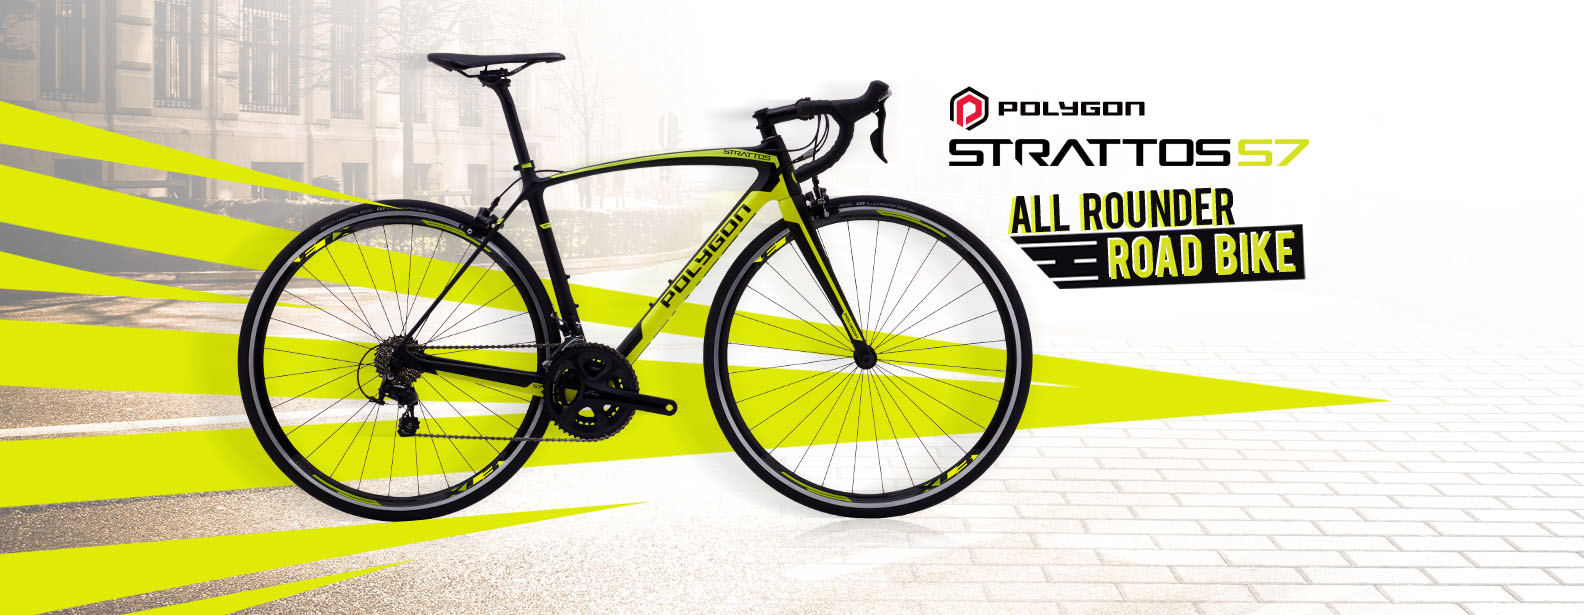 Polygon Strattos S7 Road Bike